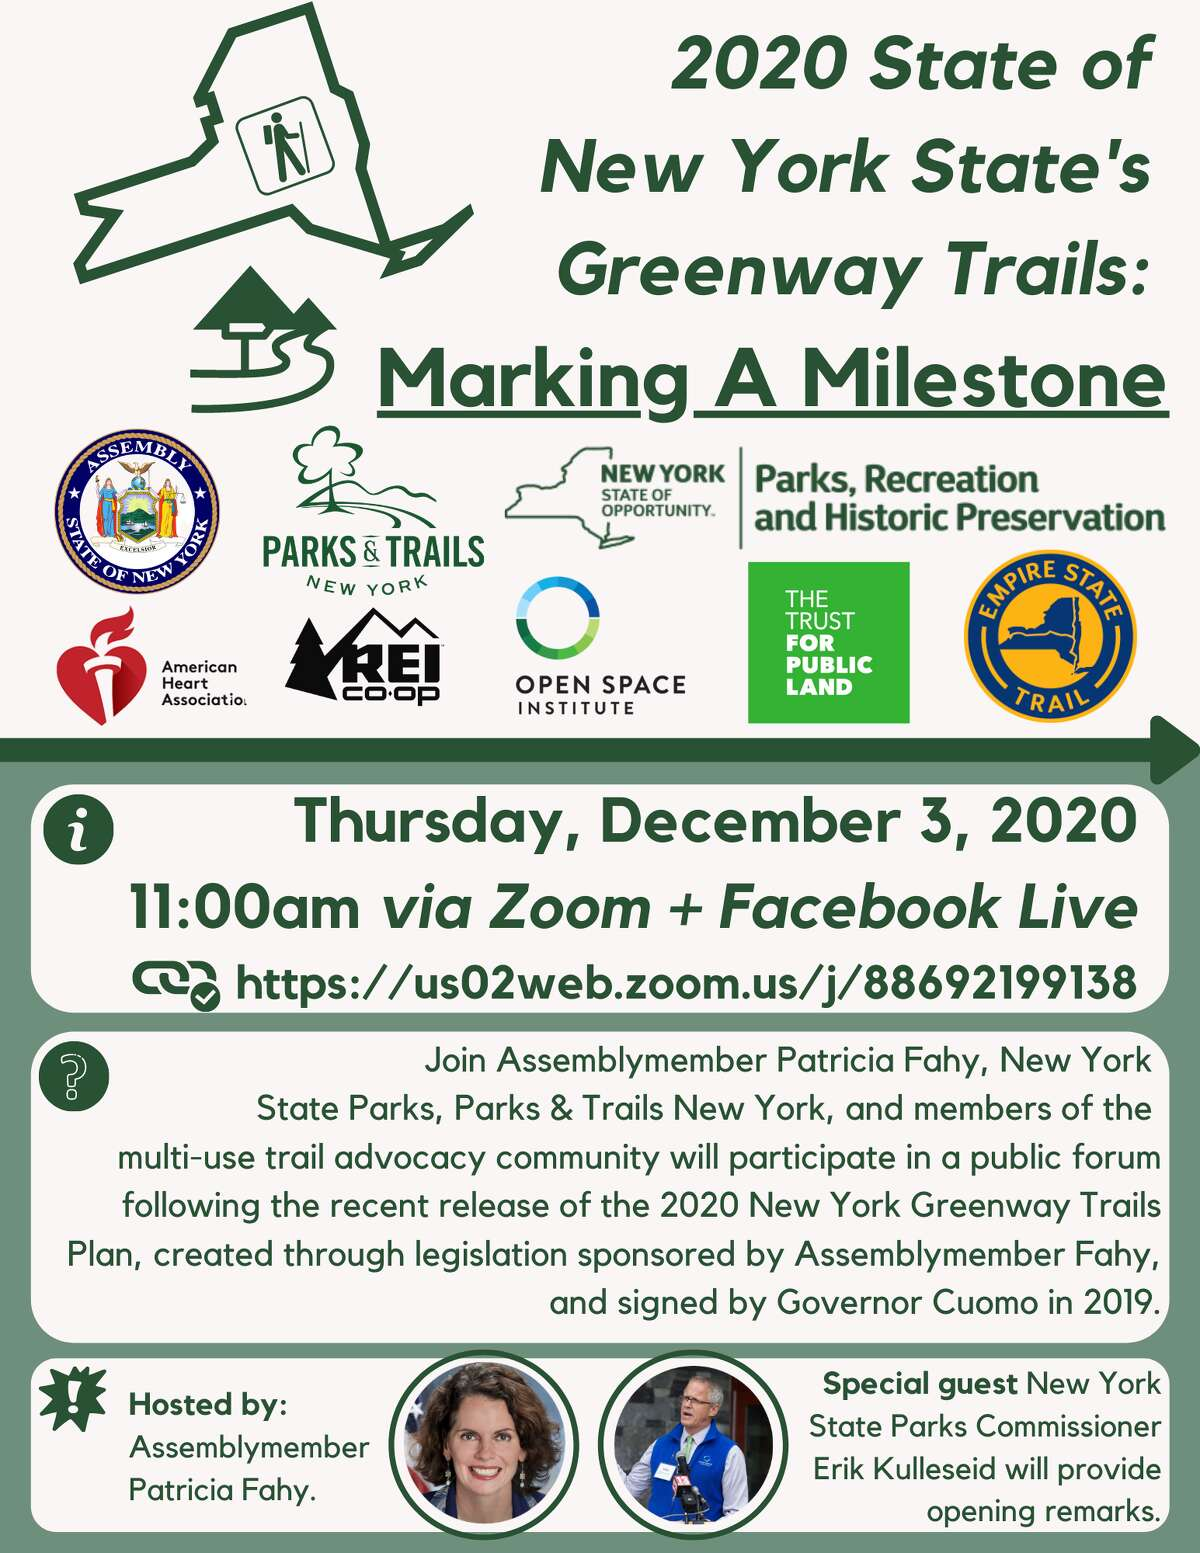 Here is information about the Greenway Trails forum